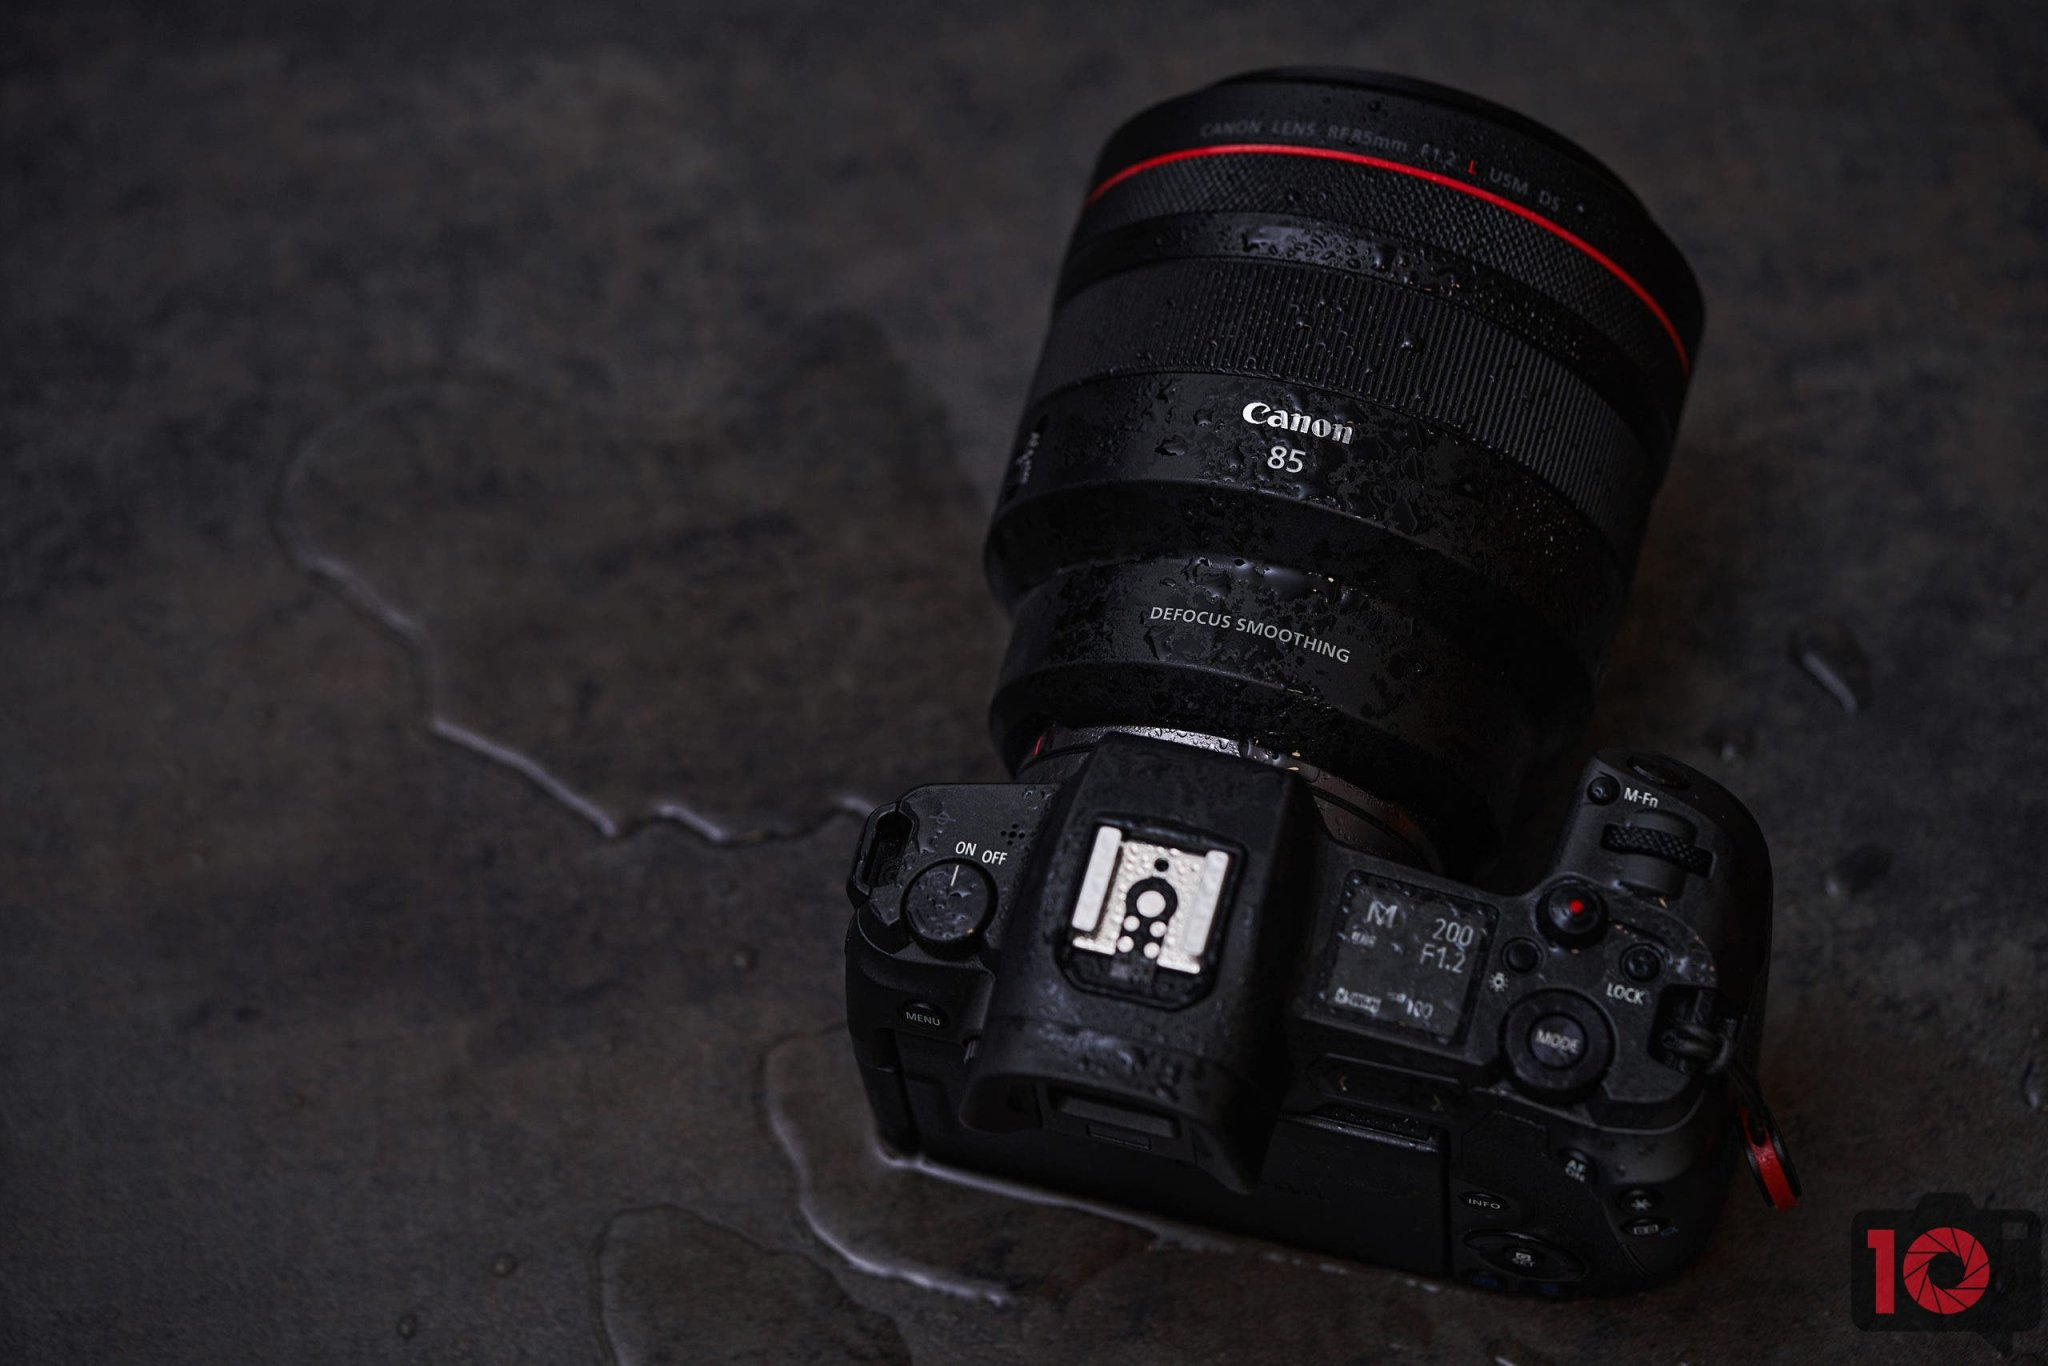 Bokeh For Days! The Canon RF 85mm f1.2 L USM DS Review